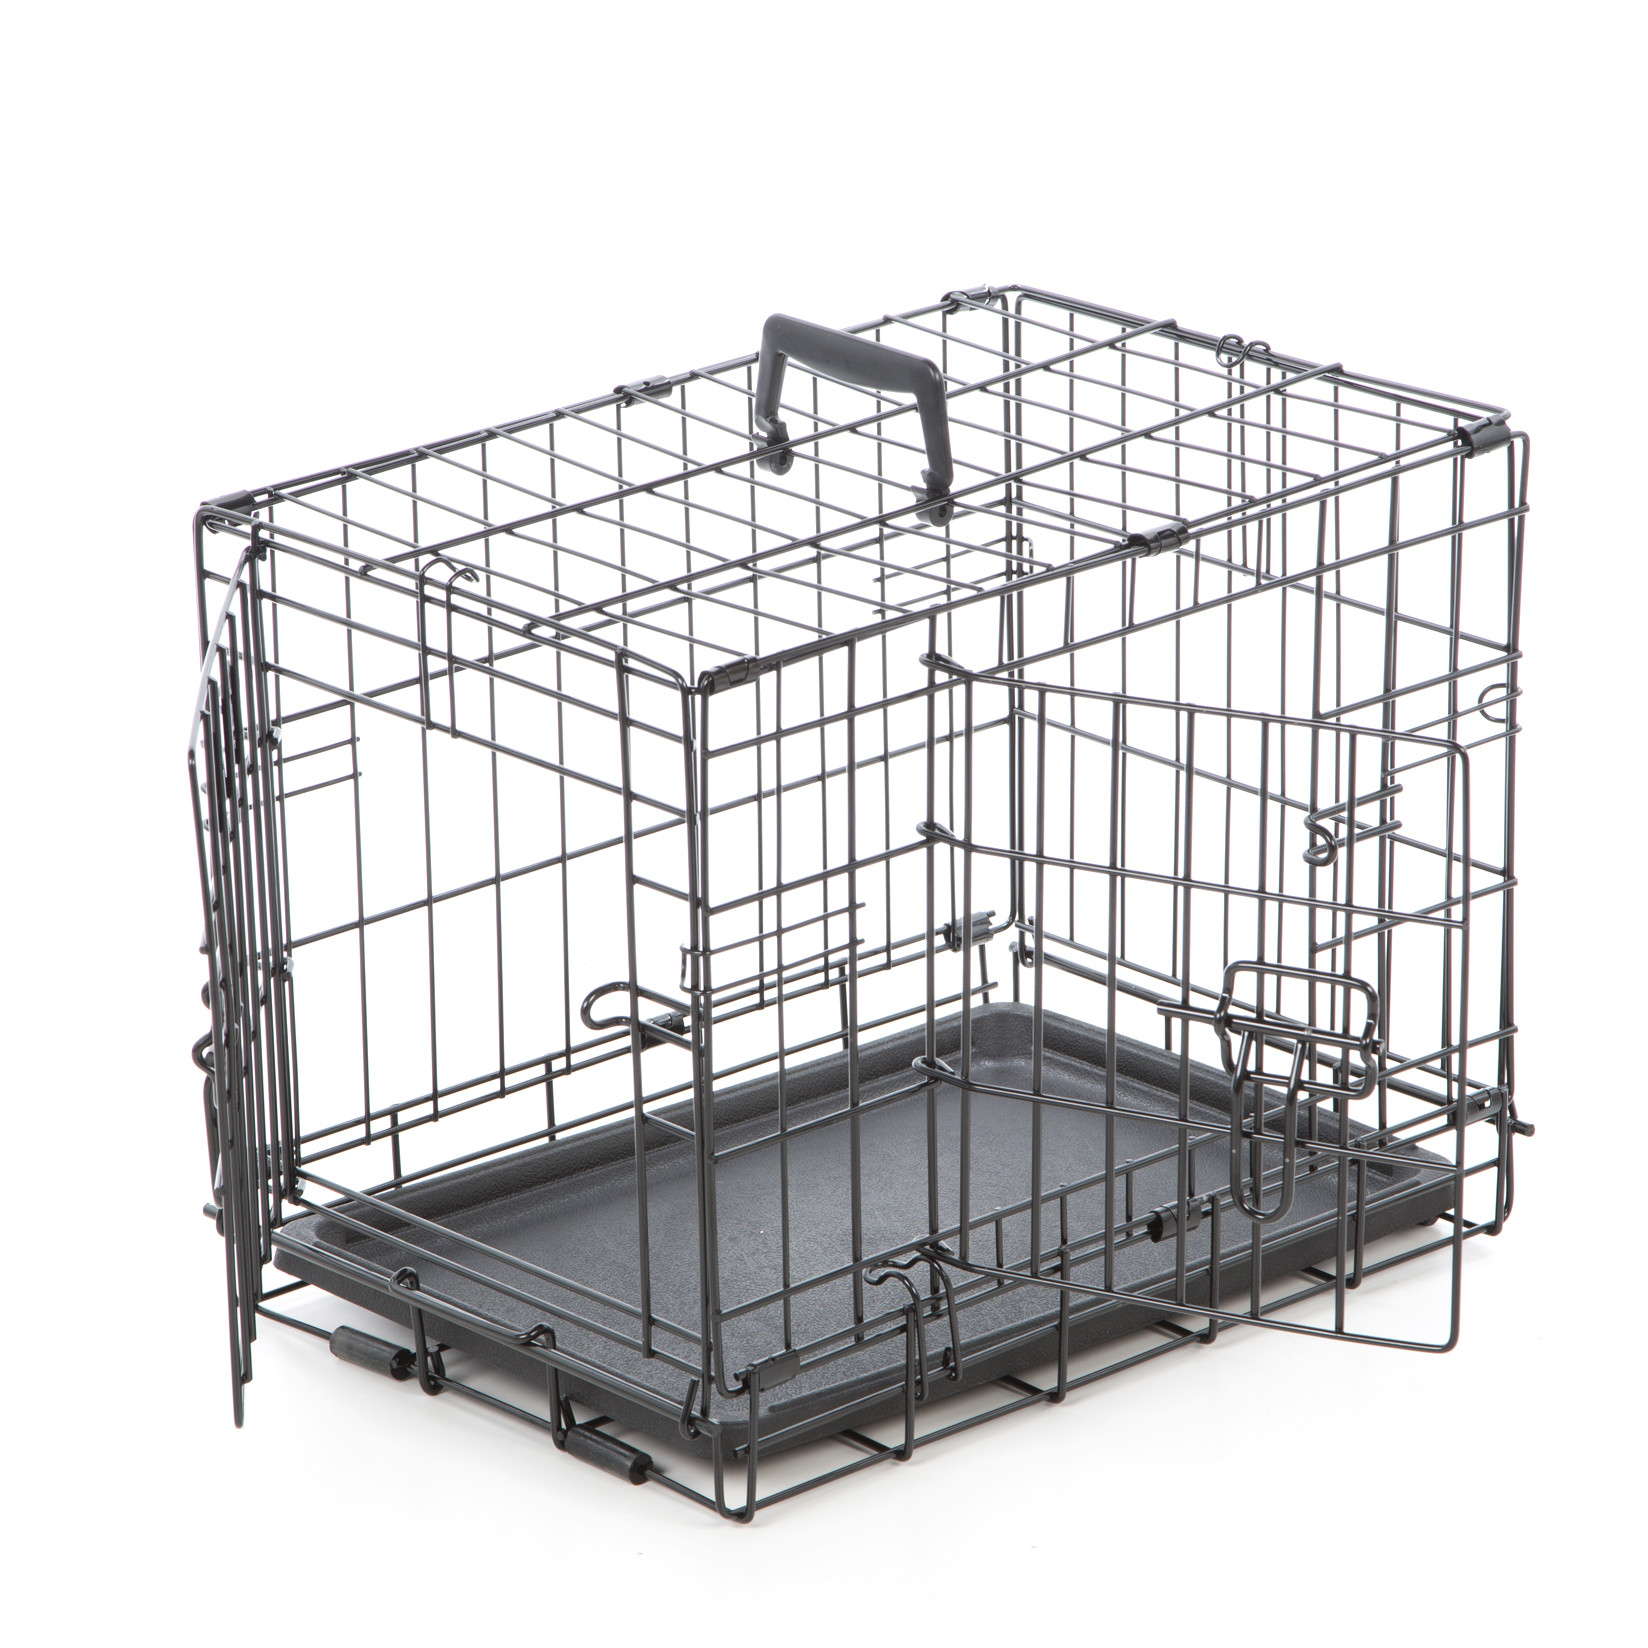 Midwest Metal Products | Adjustable Dog Crate | Midwest Dog Crates